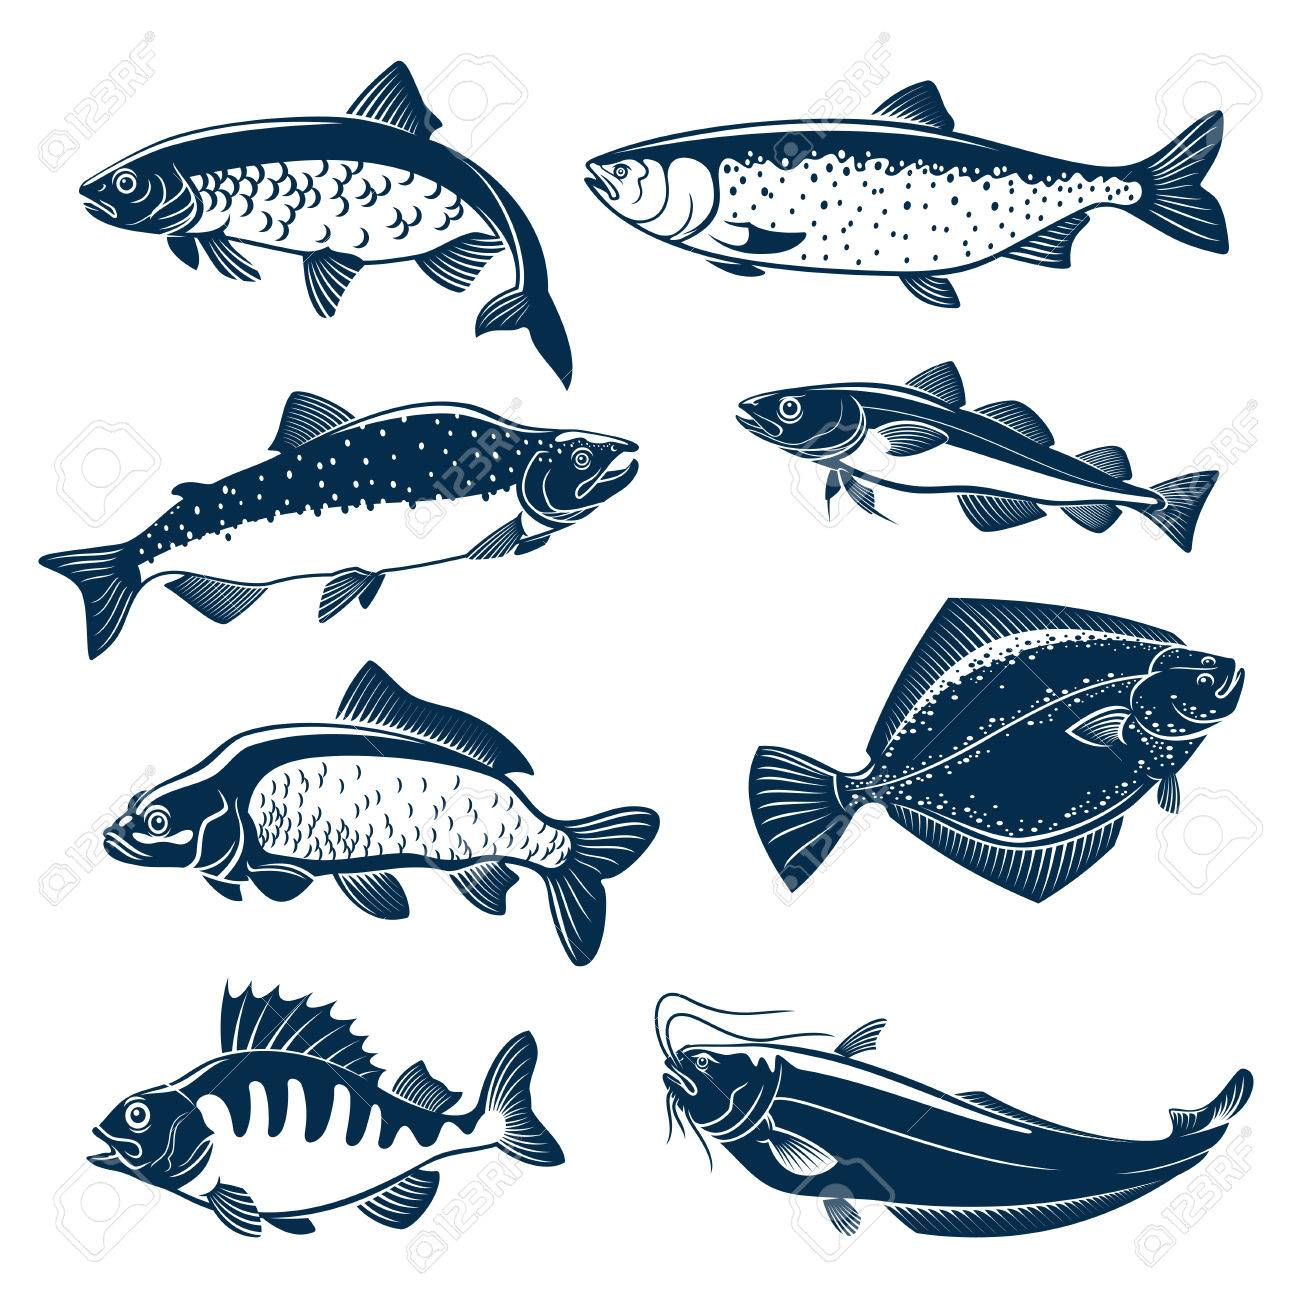 Fishes vector isolated icons. - 71567104